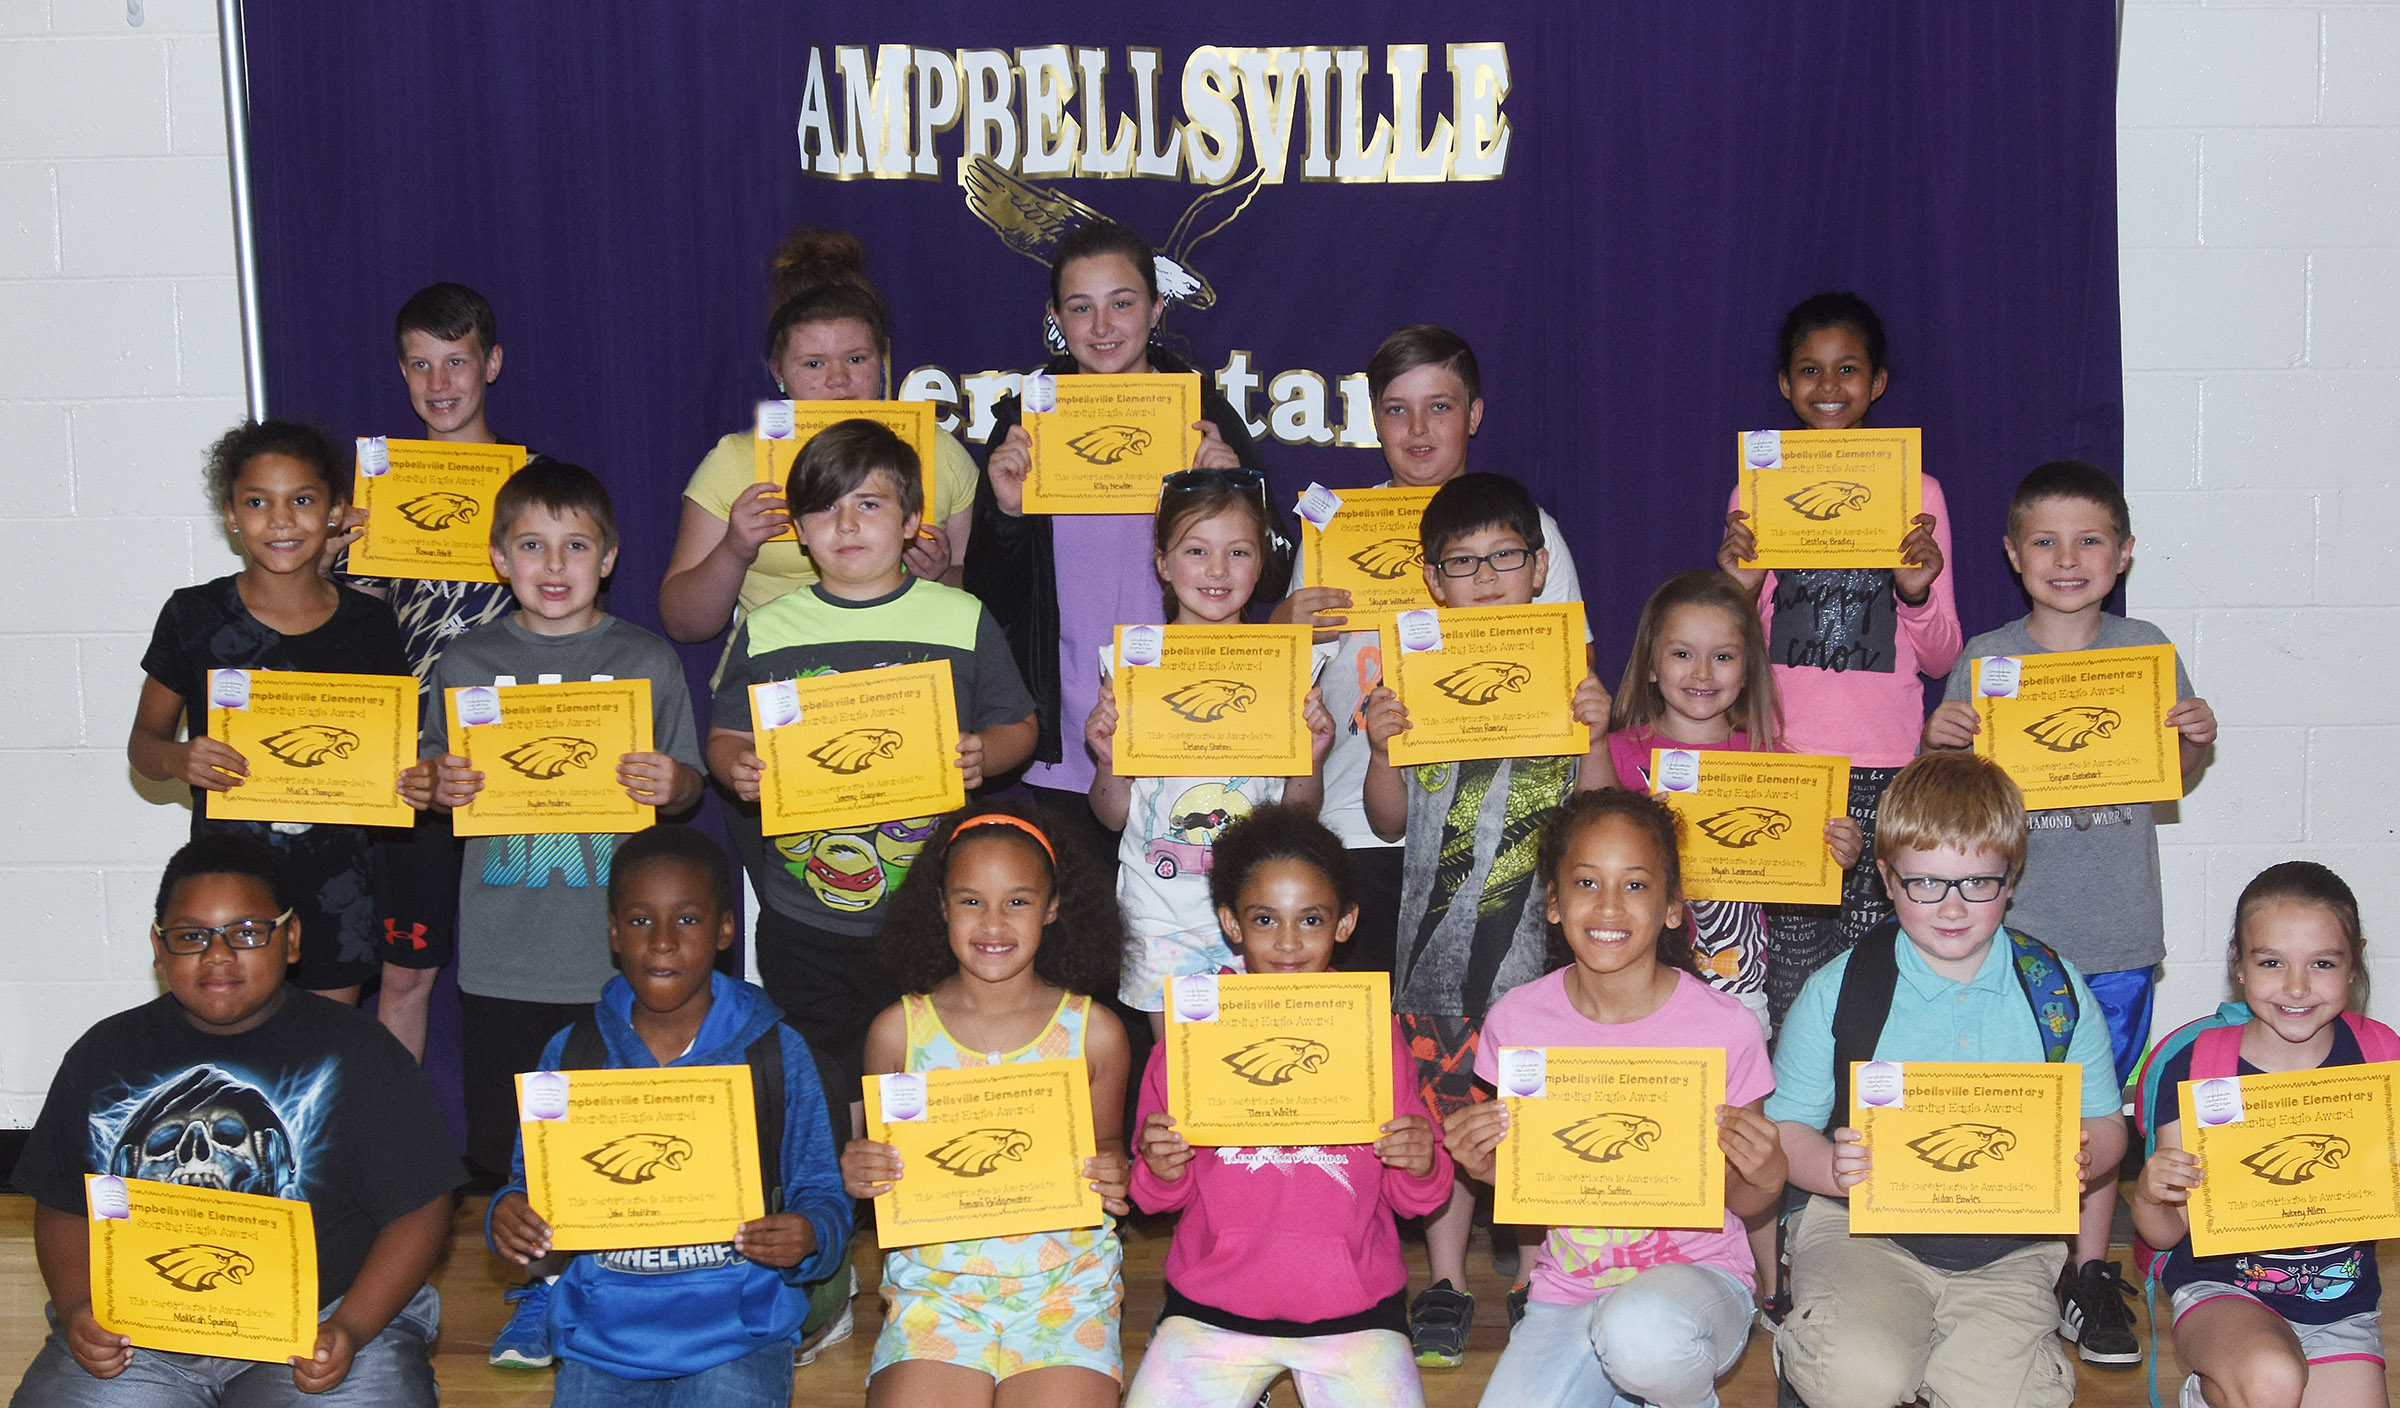 From left, front, are fourth-graders Malikiah Spurling and John Gholston, second-graders Amani Bridgewater and Tierra White, third-graders Yazlyn Sutton and Aidan Bowles and first-grader Aubrey Allen. Second row, third-grader Malia Thompson, first-graders Ayden Andrew, Jeremy Gagnon, Delaney Staton and Victrin Ramsey; kindergartener Myah Learmond and second-grader Bryson Gabehart. Back, fifth-graders Rowan Petett, Carmen Gurley, Riley Newton, Skylar Wilhoite and Destiny Bradley. Absent from the photo is third-grader Kendall Cruz.